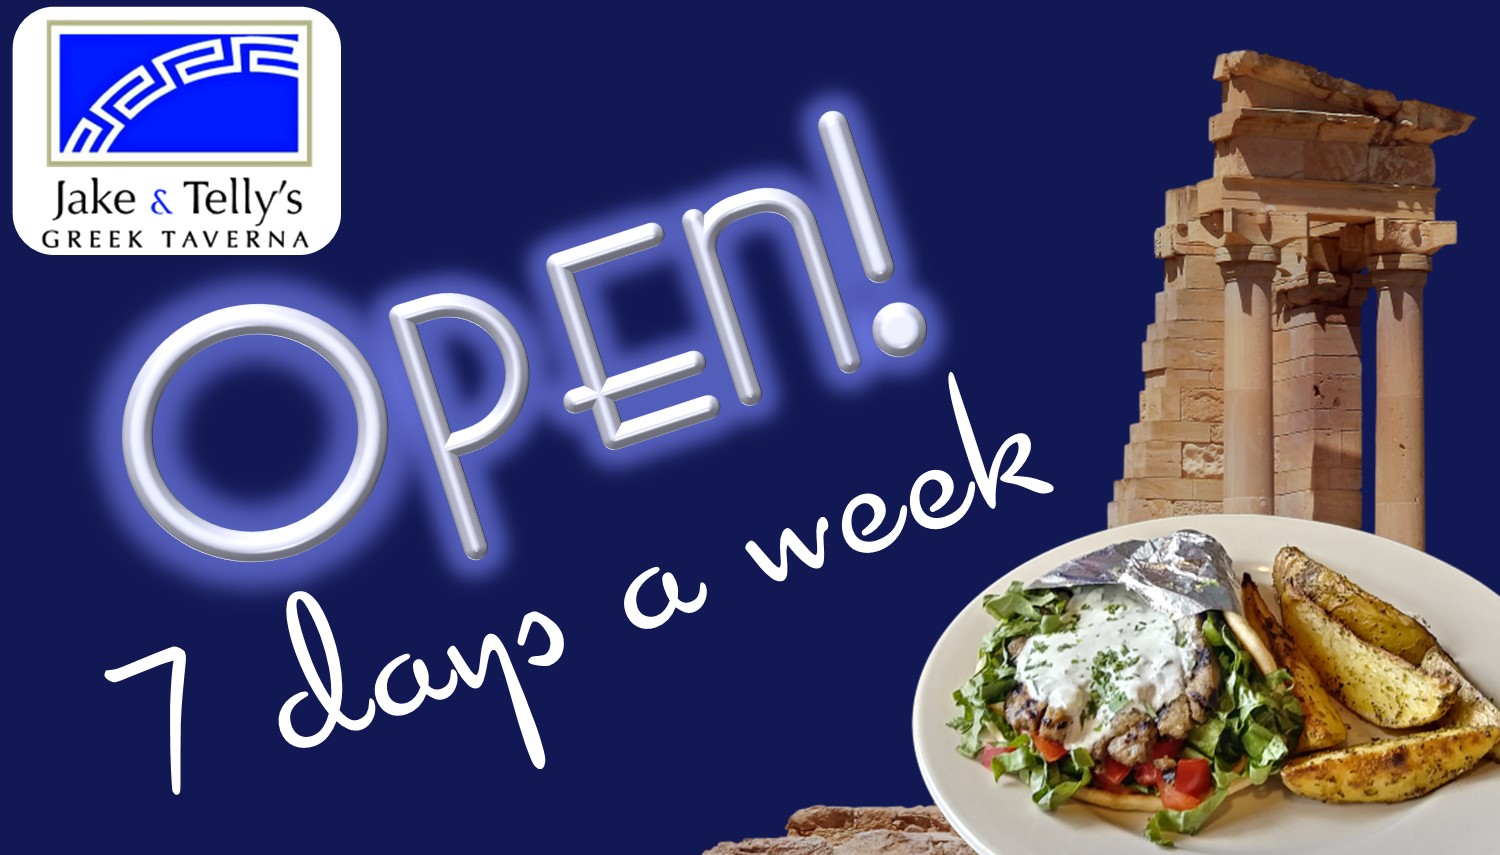 Jake and Telly's is open 7 days a week